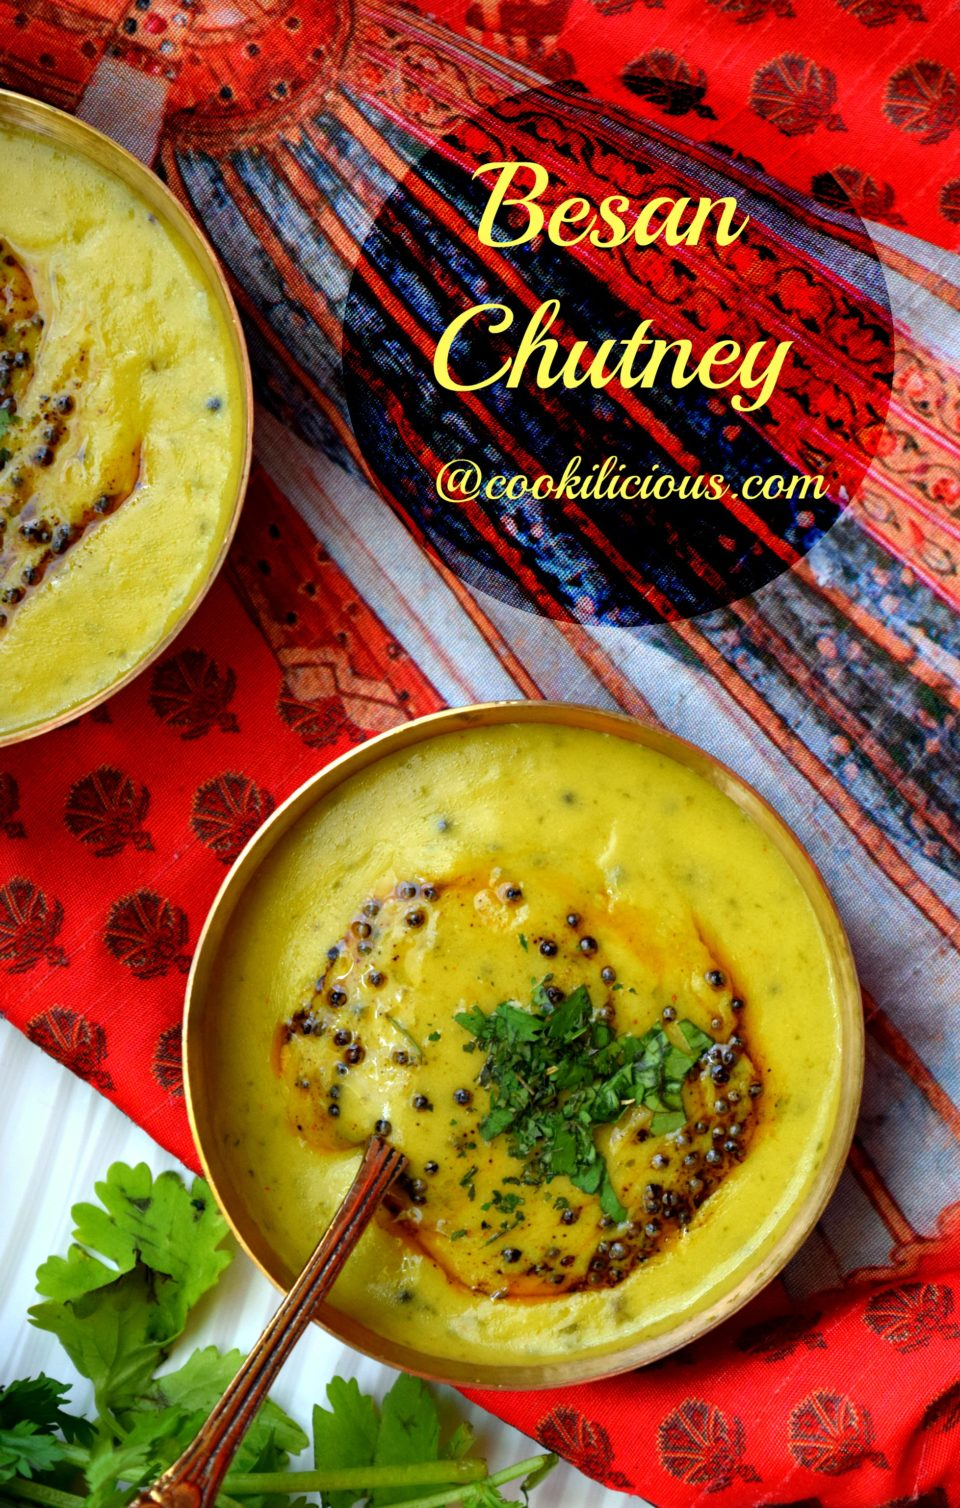 Besan Chutney/Bombay Chutney RecipeCondiments